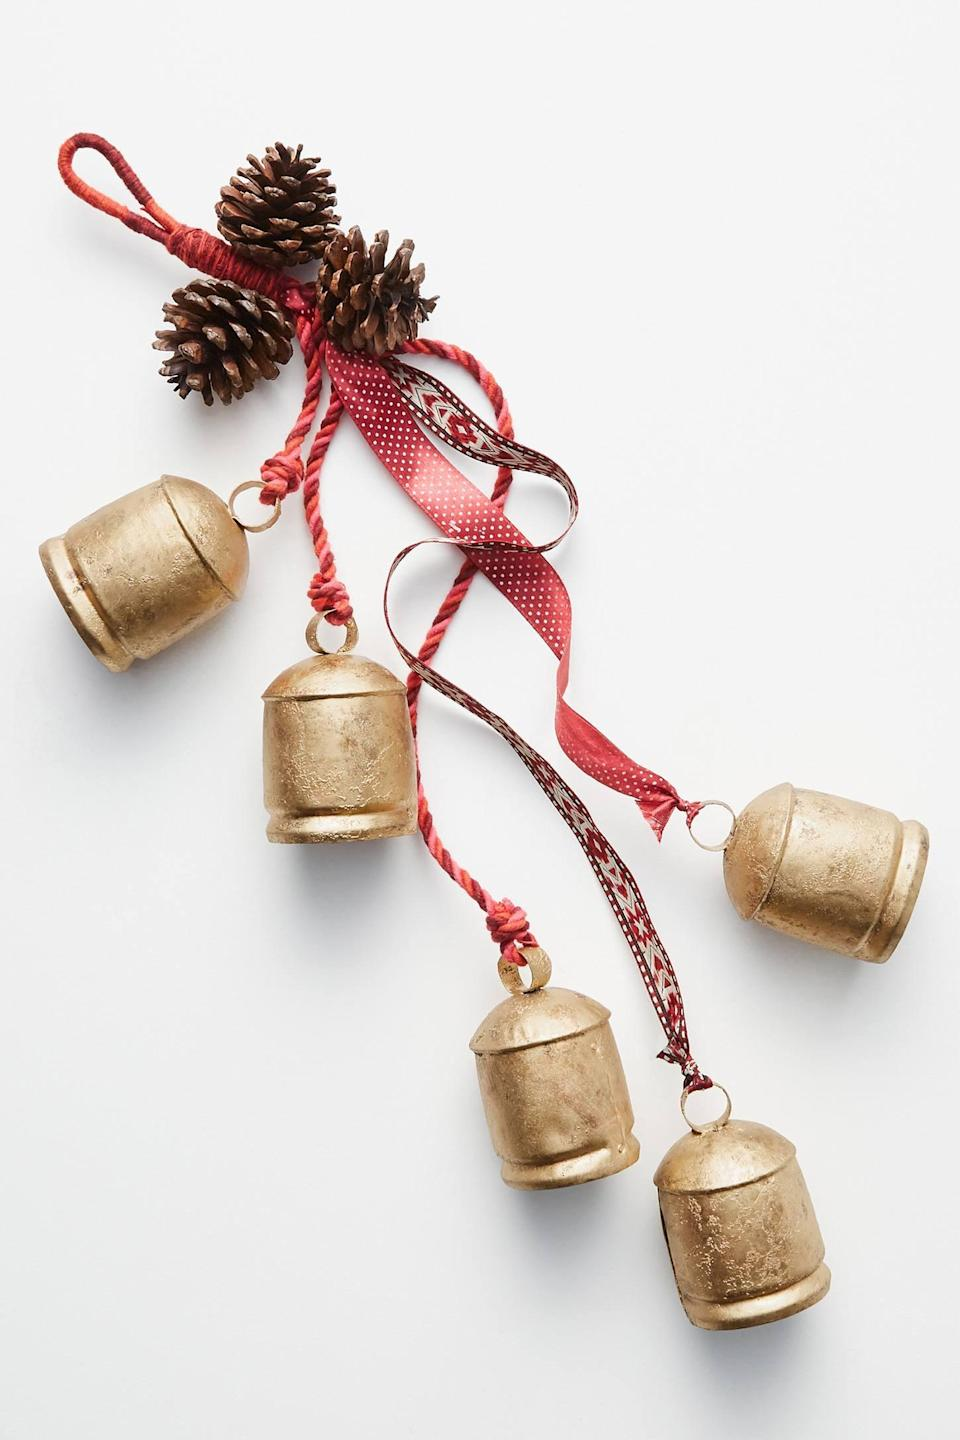 """<p>Add holiday cheer into your home with the <a href=""""https://www.popsugar.com/buy/Pinecones-Bells-Door-Hanger-490582?p_name=Pinecones%20and%20Bells%20Door%20Hanger&retailer=anthropologie.com&pid=490582&price=38&evar1=casa%3Aus&evar9=46615300&evar98=https%3A%2F%2Fwww.popsugar.com%2Fhome%2Fphoto-gallery%2F46615300%2Fimage%2F46615453%2FPinecones-Bells-Door-Hanger&list1=shopping%2Canthropologie%2Choliday%2Cchristmas%2Cchristmas%20decorations%2Choliday%20decor%2Chome%20shopping&prop13=mobile&pdata=1"""" rel=""""nofollow noopener"""" class=""""link rapid-noclick-resp"""" target=""""_blank"""" data-ylk=""""slk:Pinecones and Bells Door Hanger"""">Pinecones and Bells Door Hanger</a> ($38).</p>"""